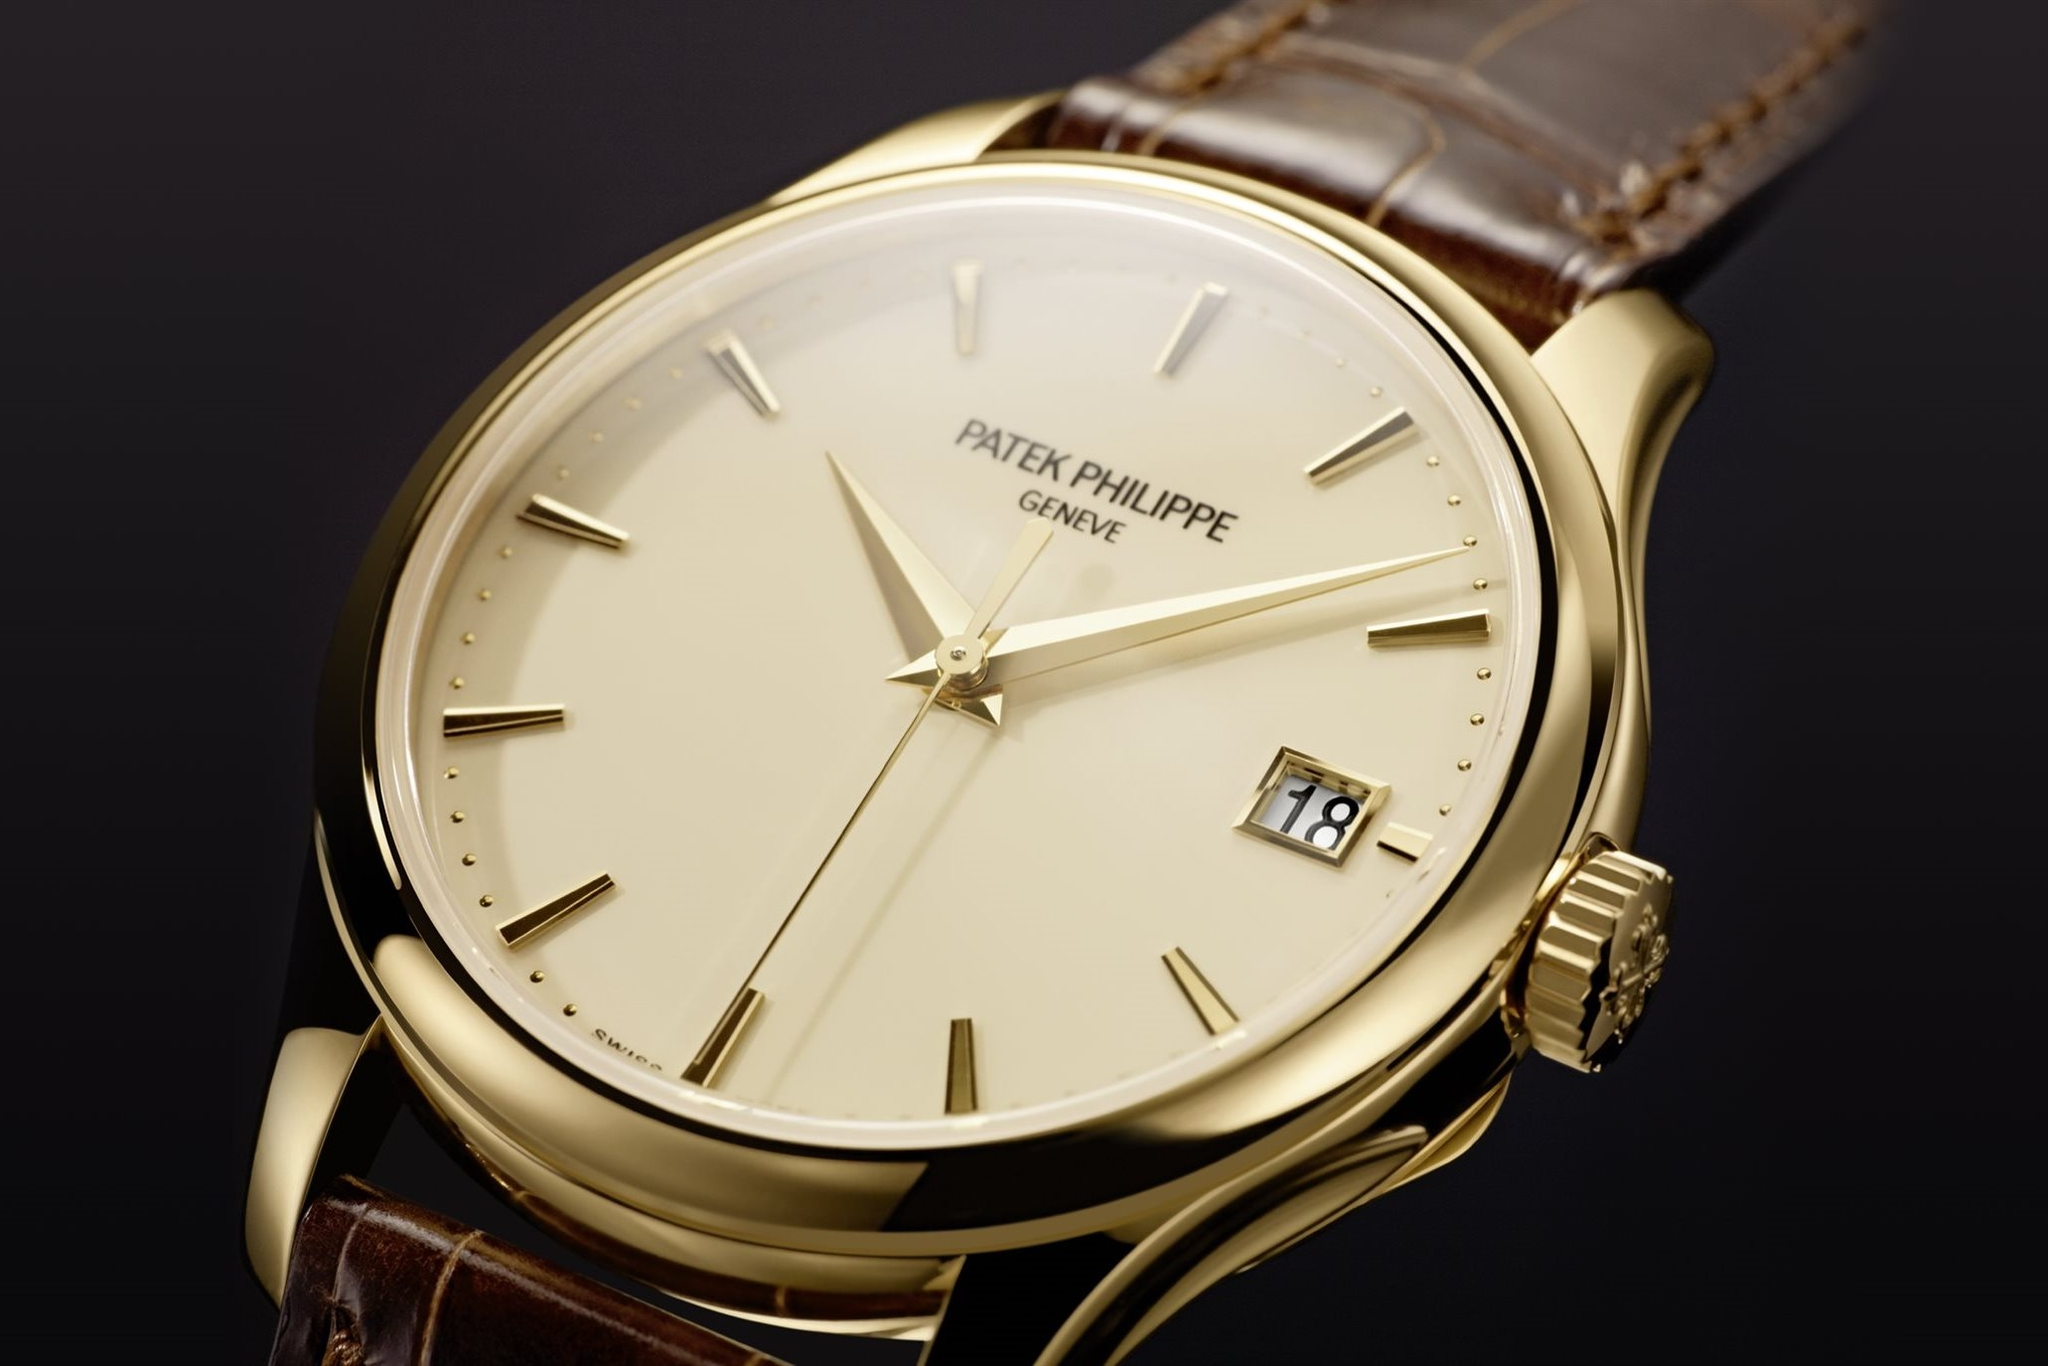 ĐỒNG HỒ PATEK PHILIPPER CALATRAVA 5227J DATE, SWEEP SECONDS